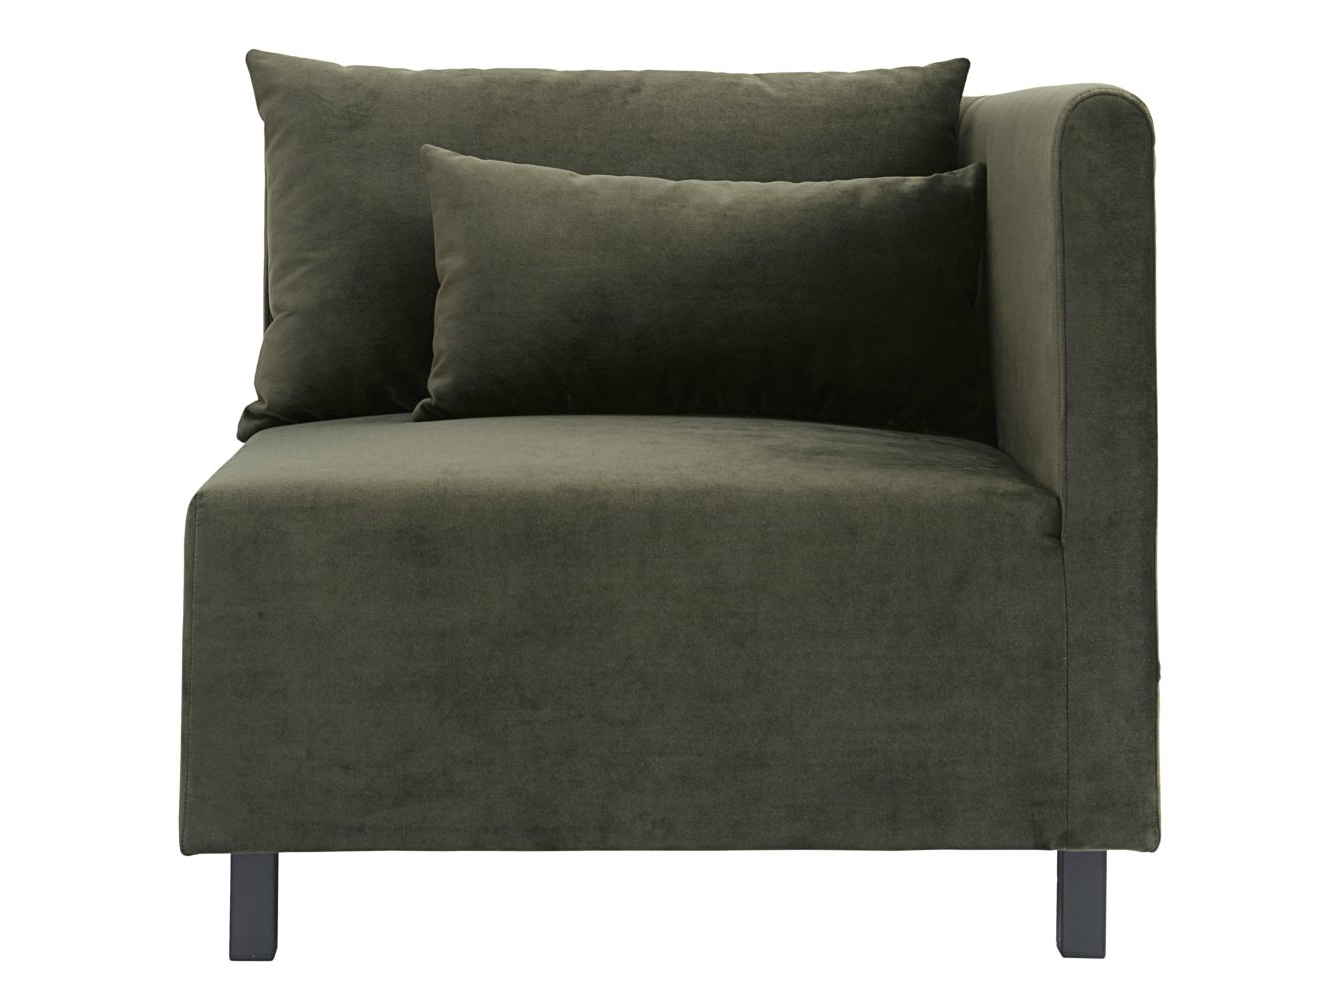 Banken - Housedoctor-bank-sofa-element-groen-corner-hoekelement-85x85x77cm-defdef